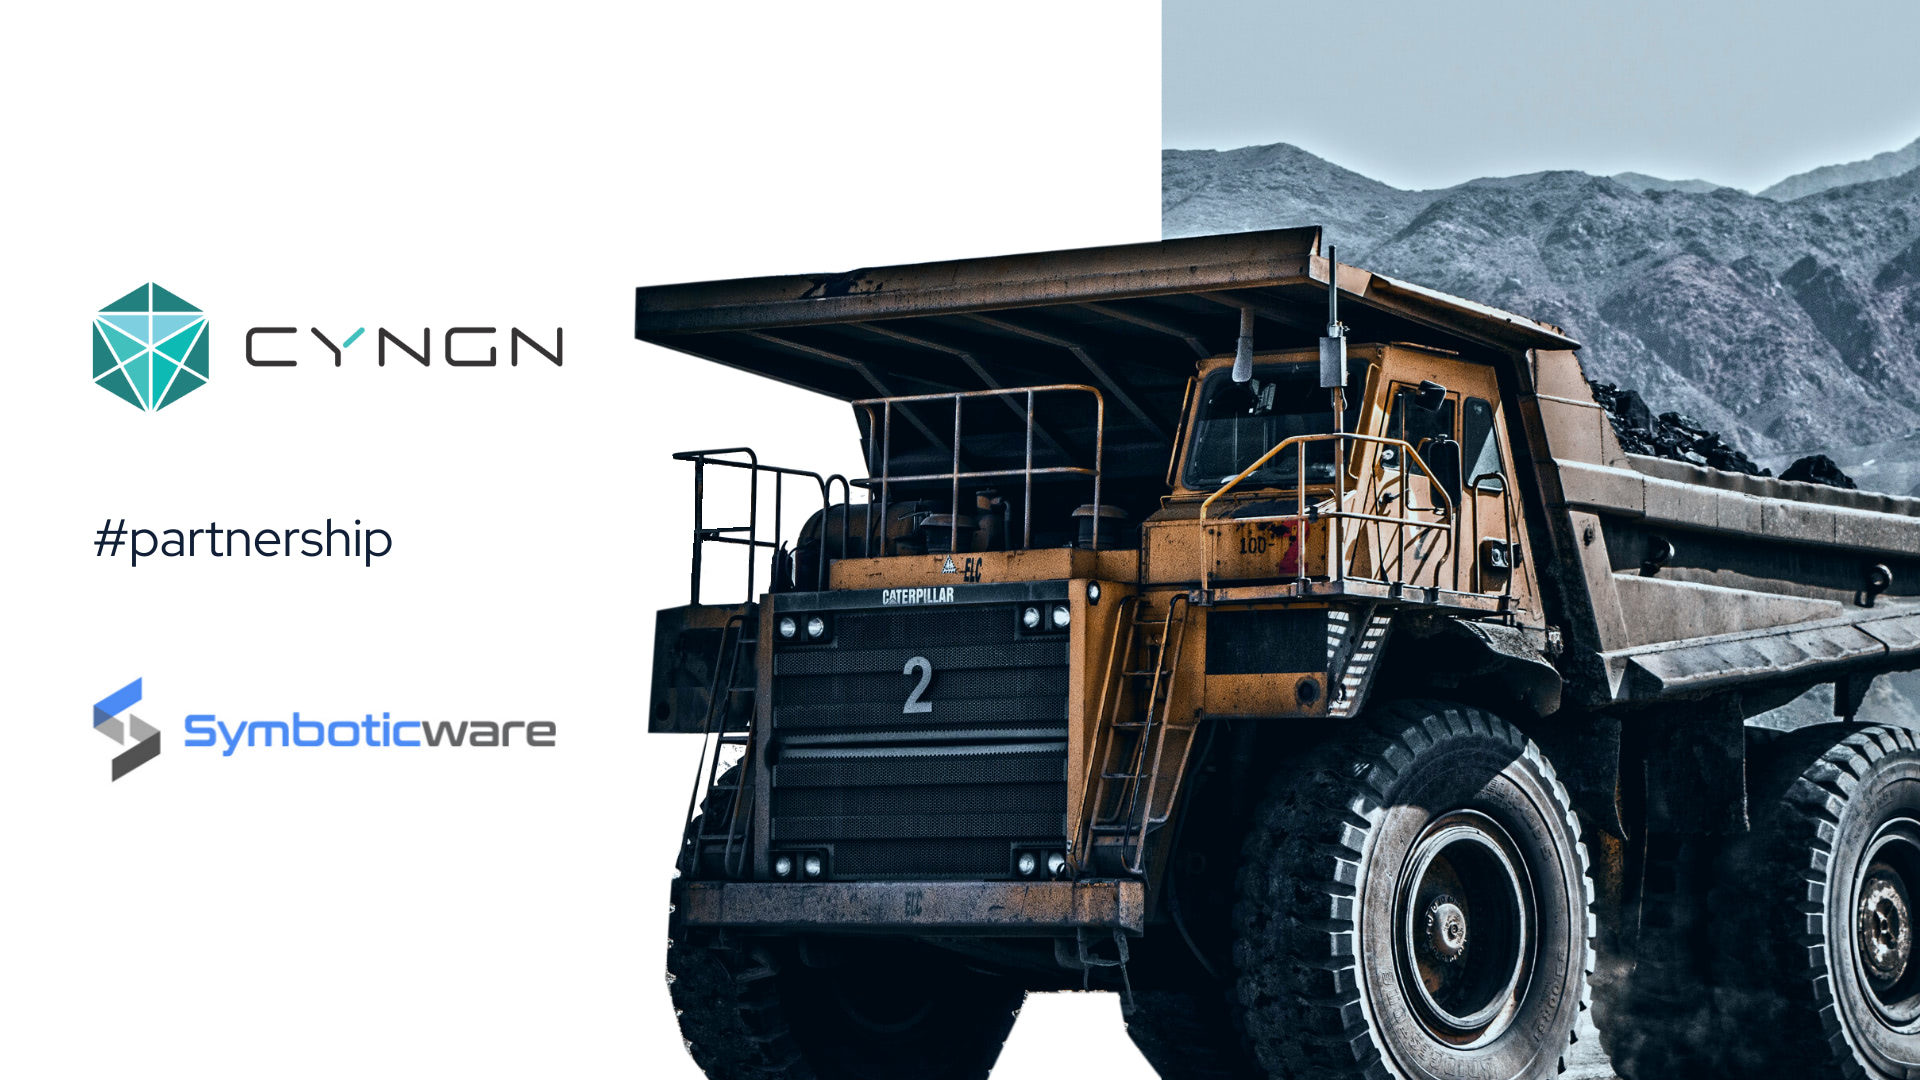 Cyngn Partners with Symboticware to Improve Off-Highway Vehicle Safety in the Natural Resources Industry